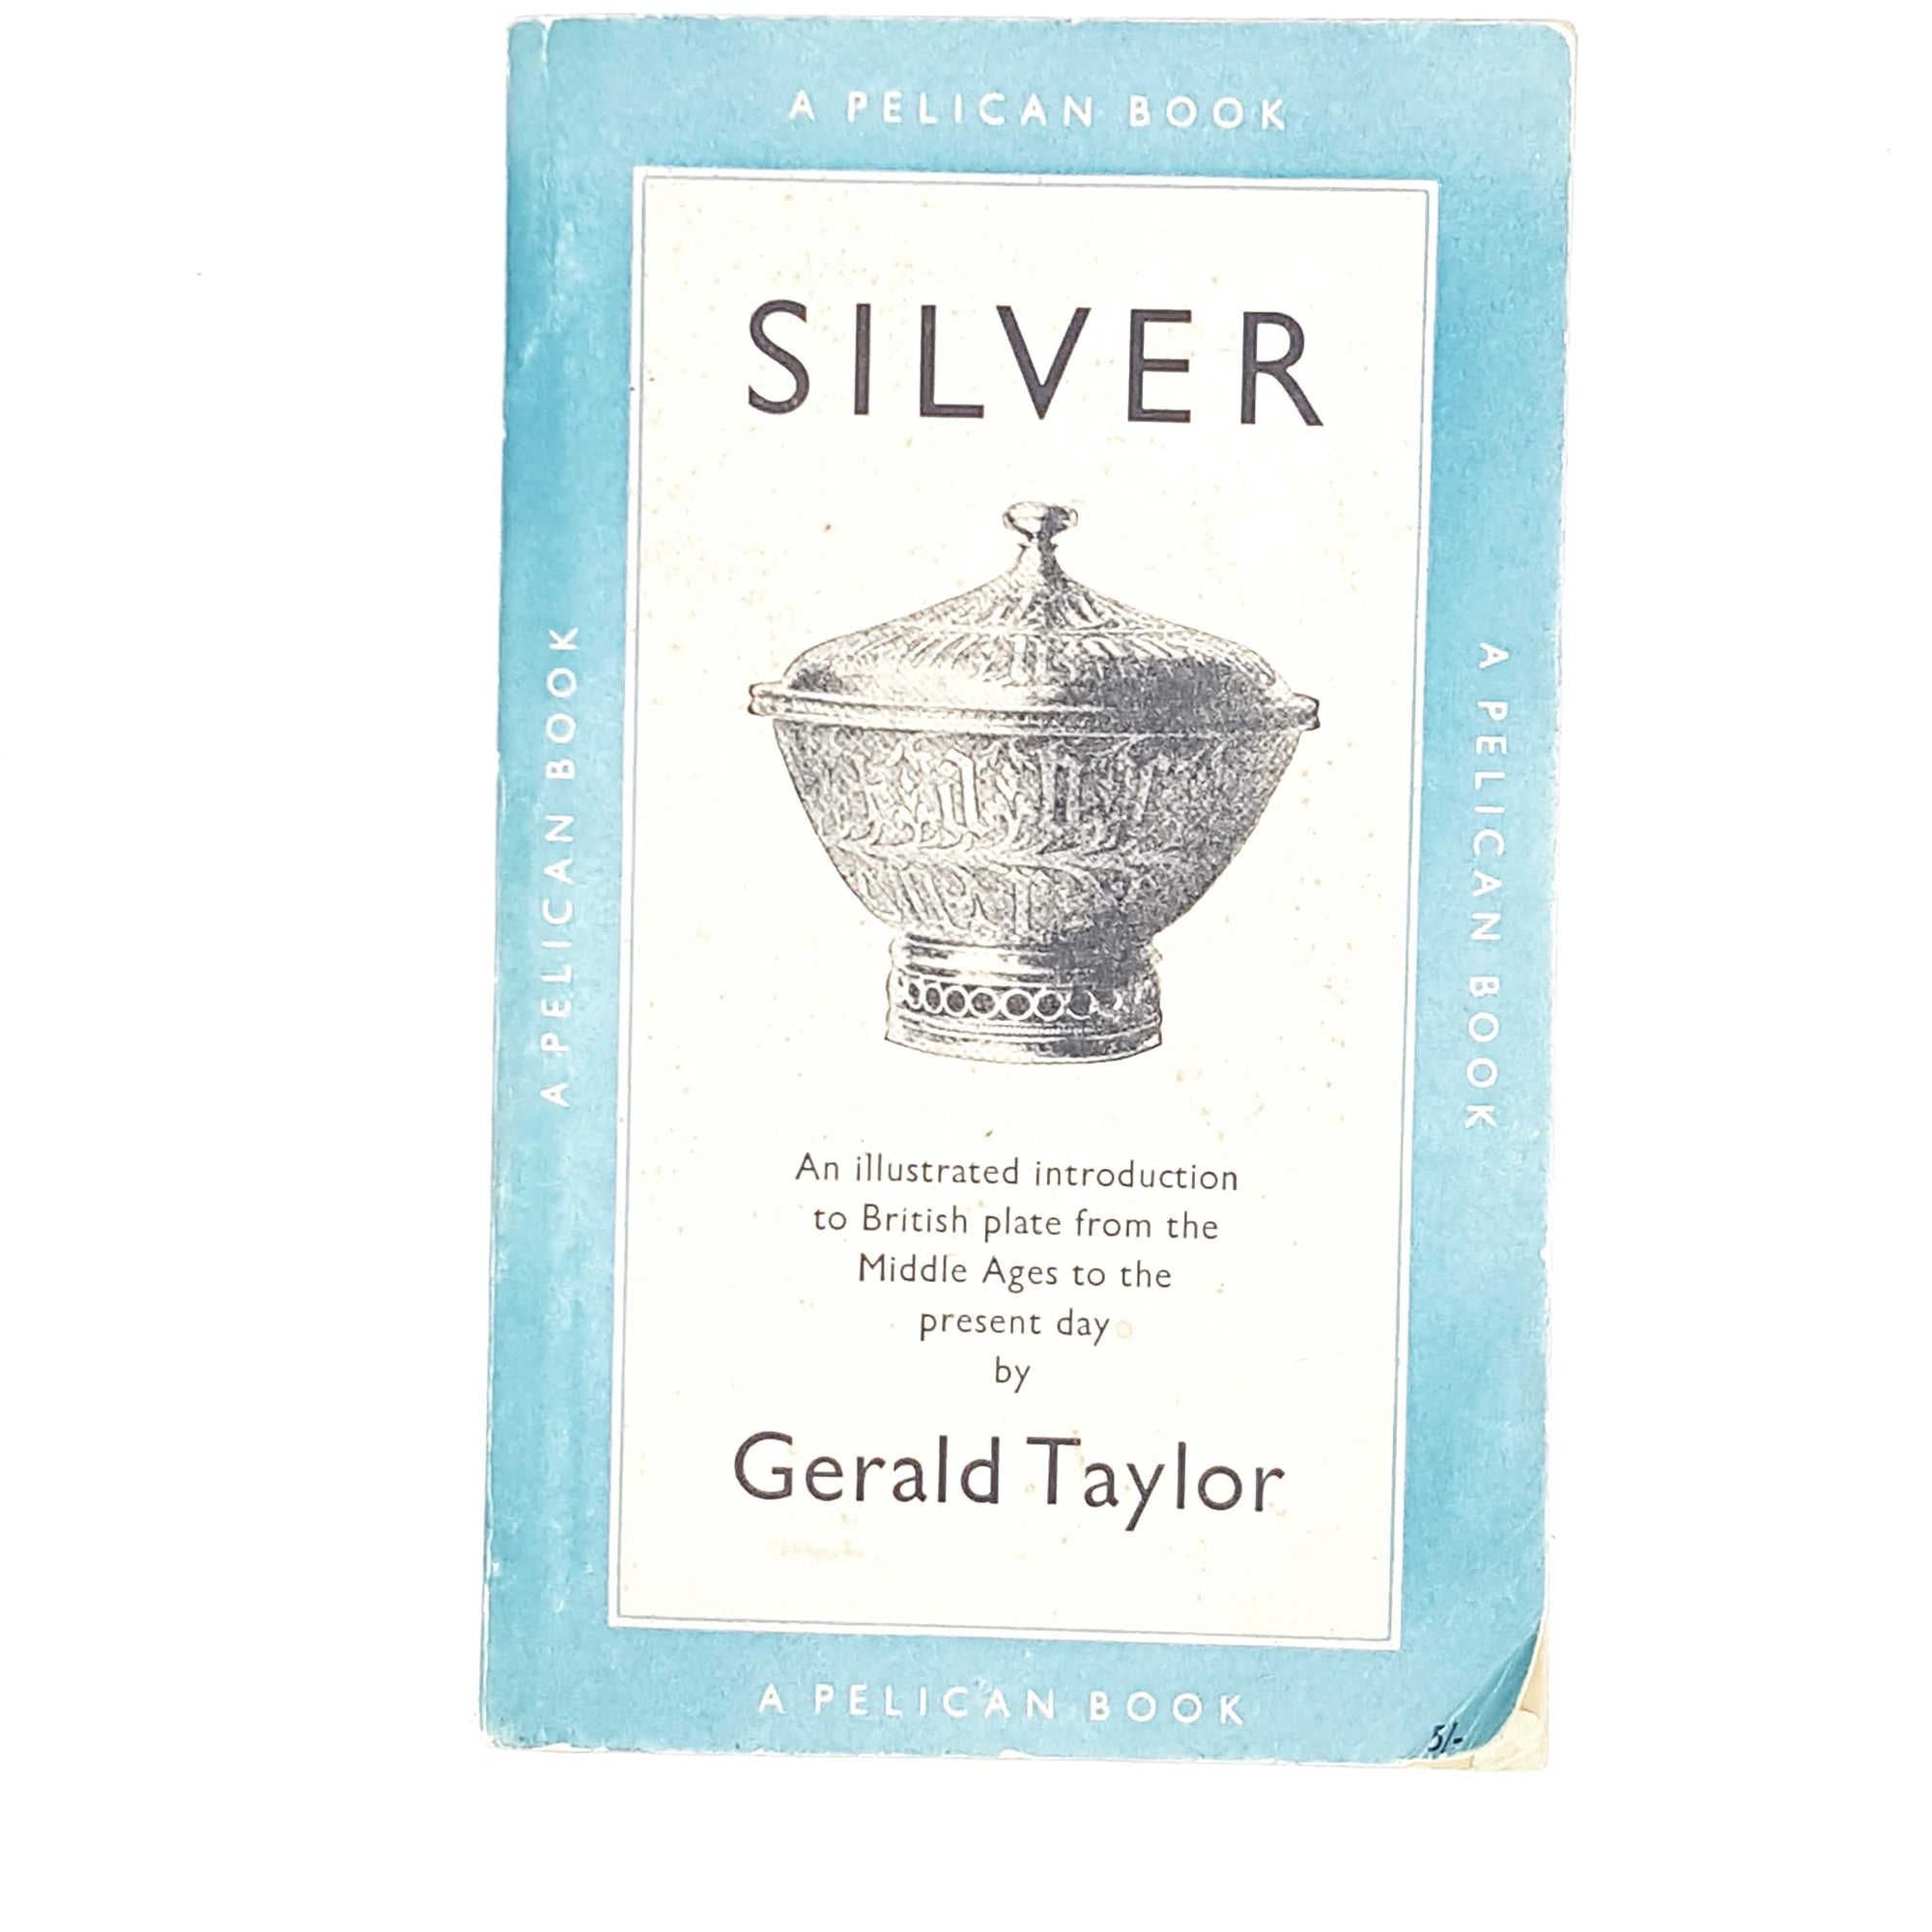 vintage-pelican-silver-by-gerald-taylor-1956-pale-blue-country-house-library